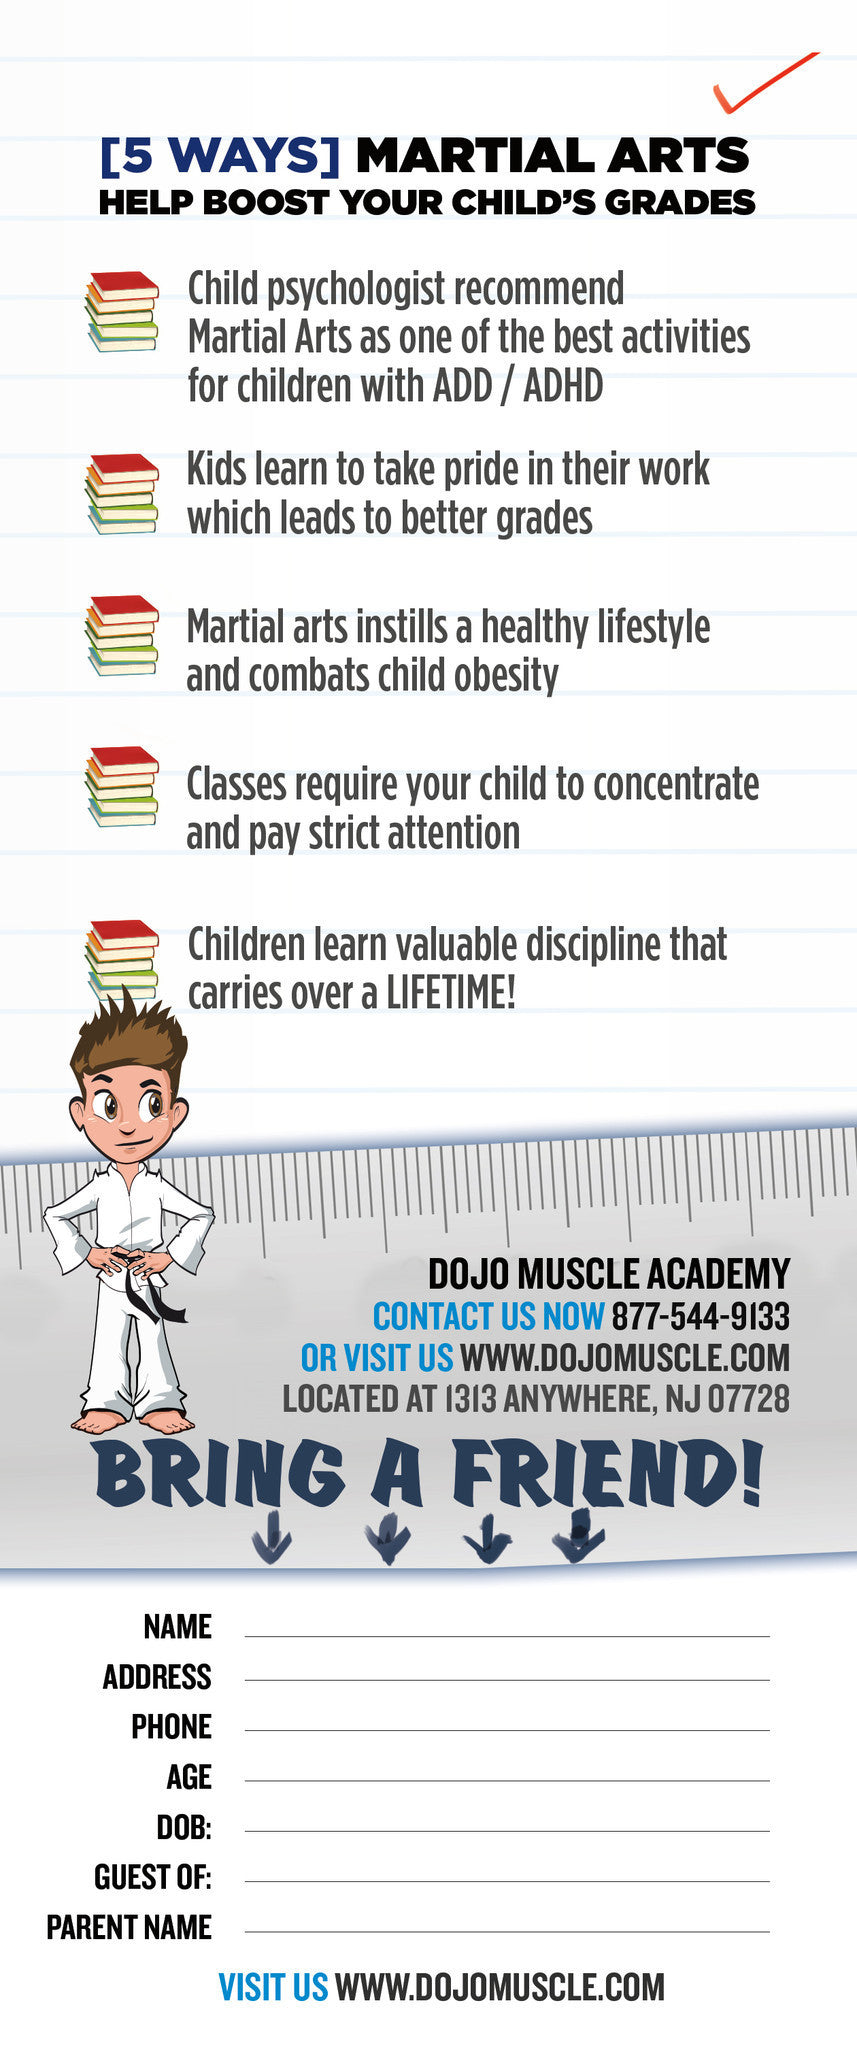 buddy pass back to school martial arts students get better grades buddy pass back to school martial arts students get better grades c